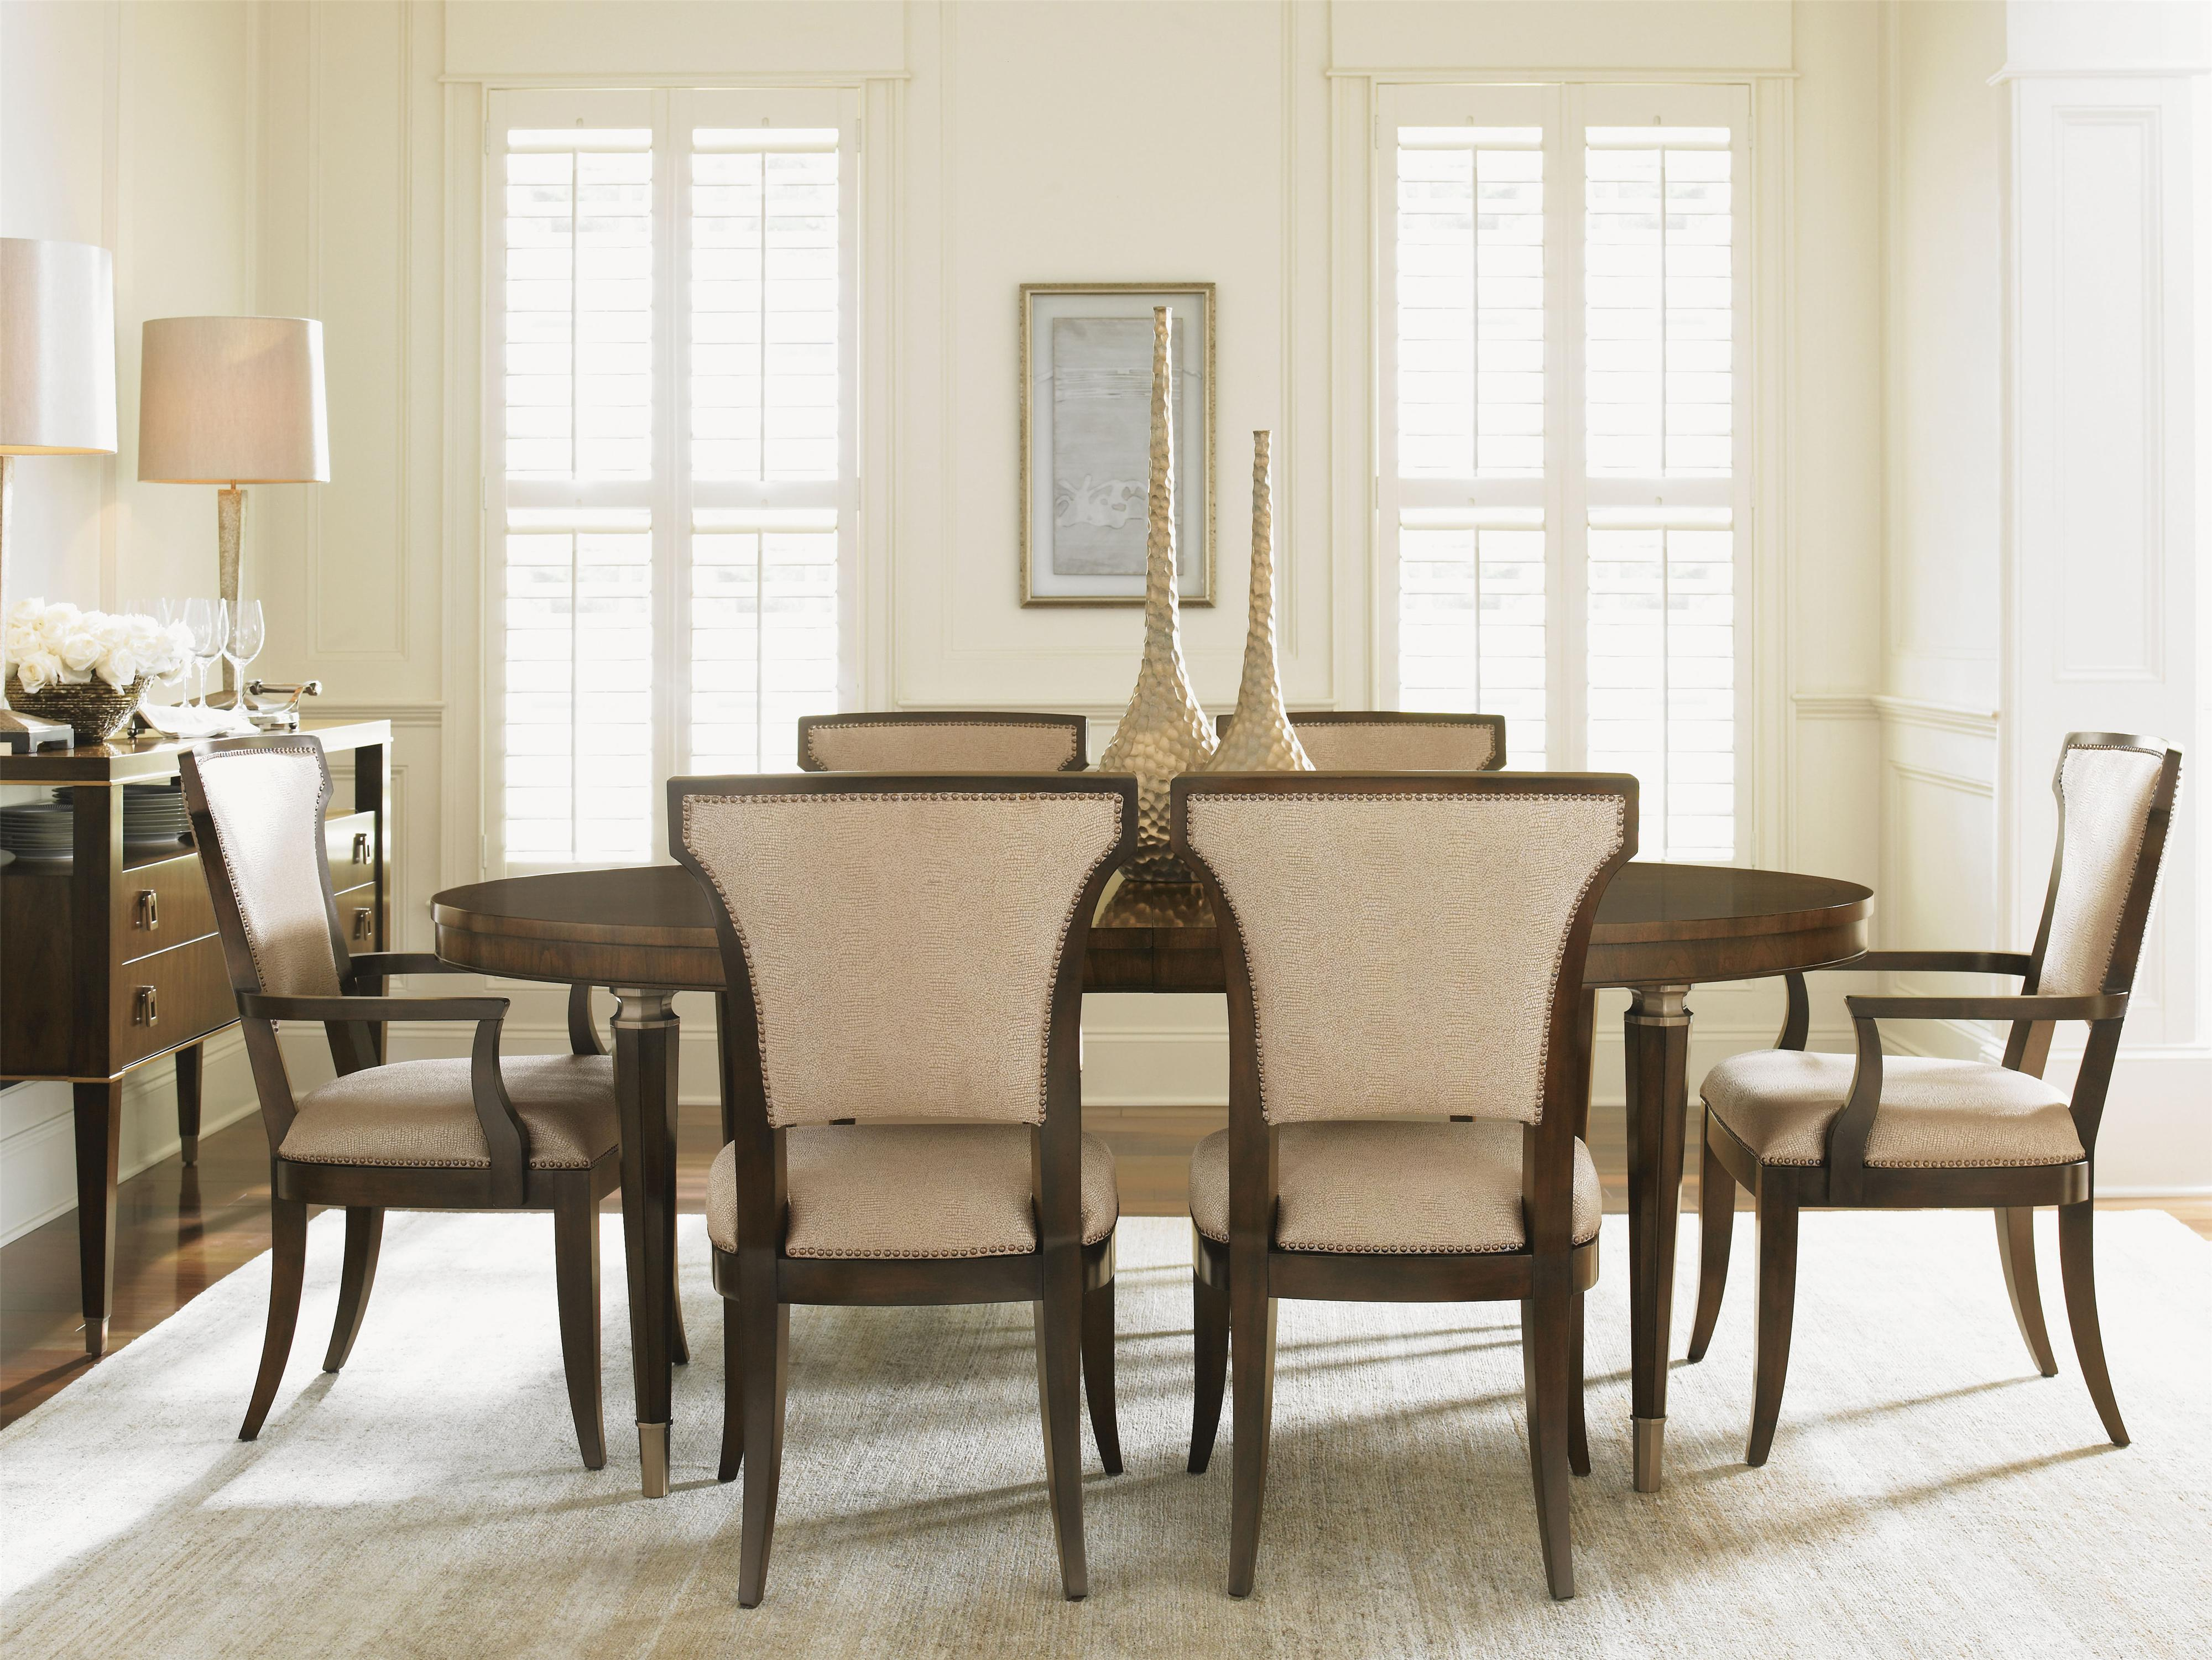 Tower Place 8 Piece Formal Dining Room Group by Lexington at Johnny Janosik